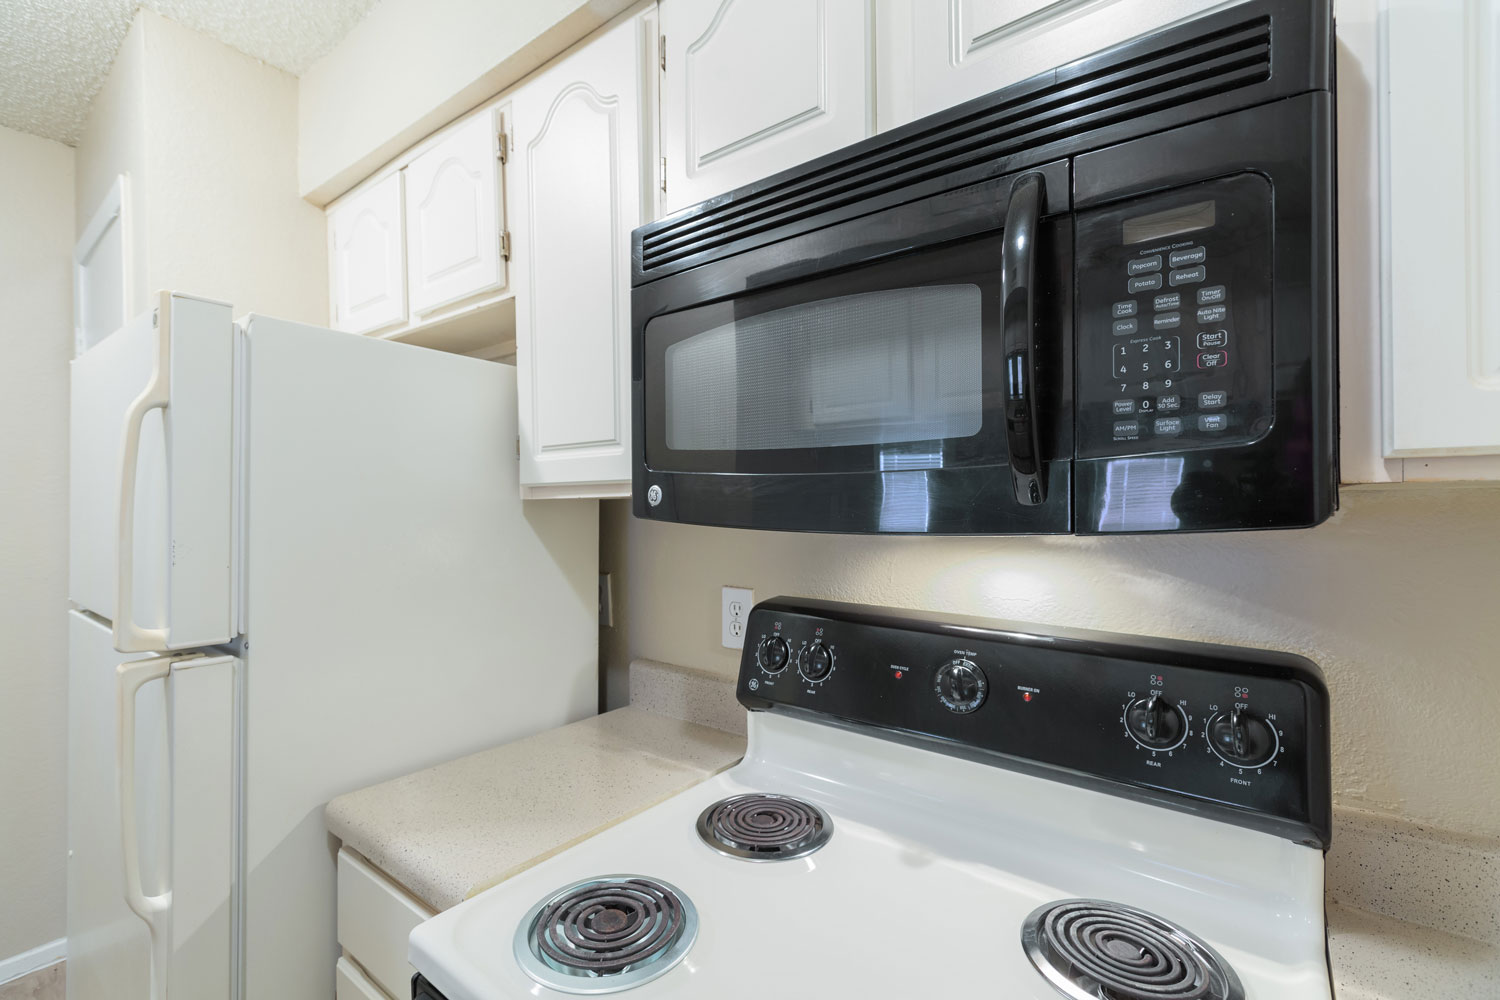 Oven and Microwave at Sapphire Apartments in San Antonio, Texas